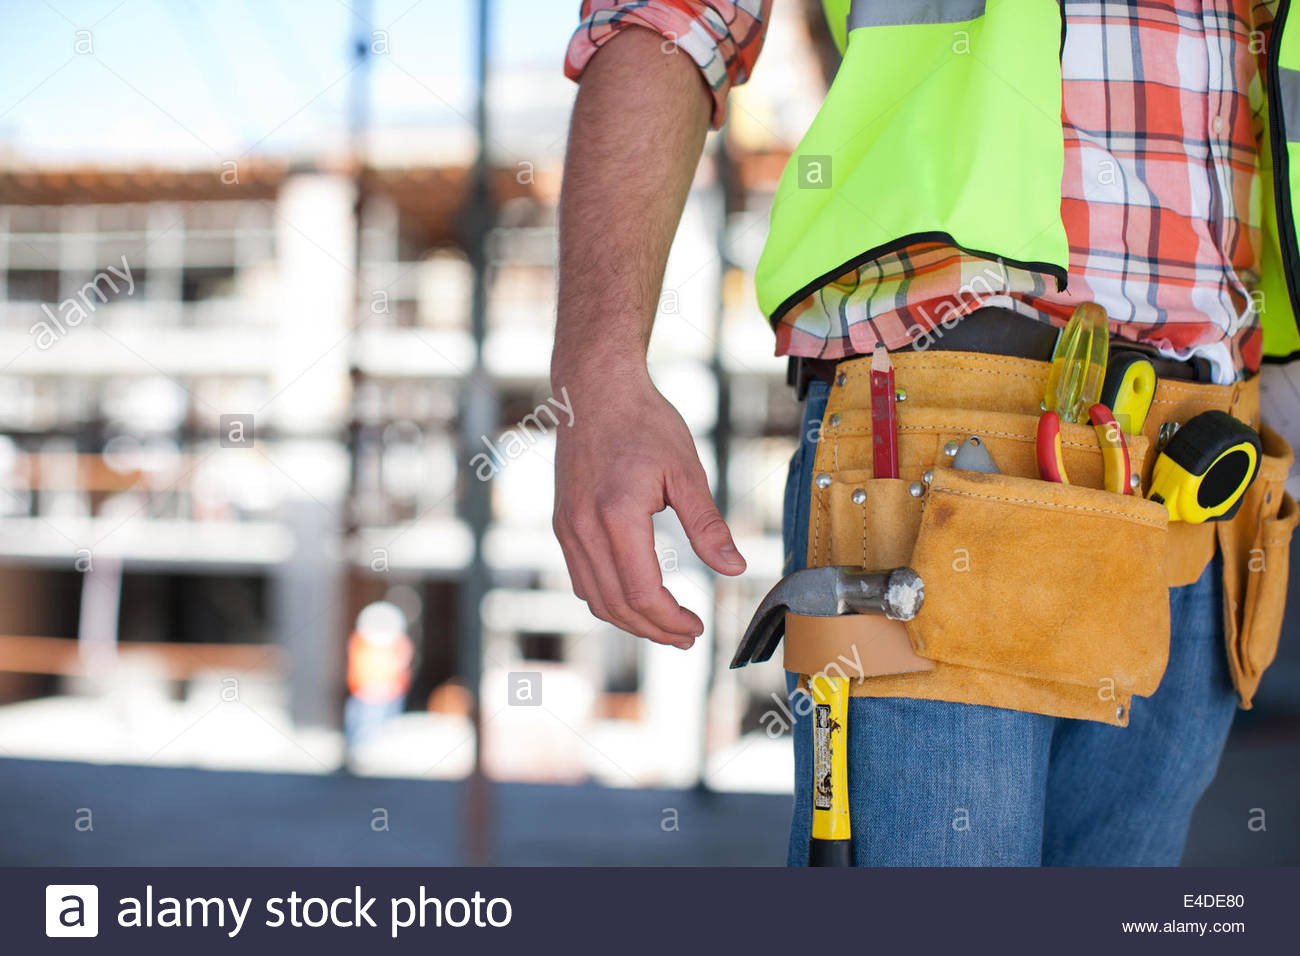 Close up of construction workerÂ's tool belt on construction site - Stock Image